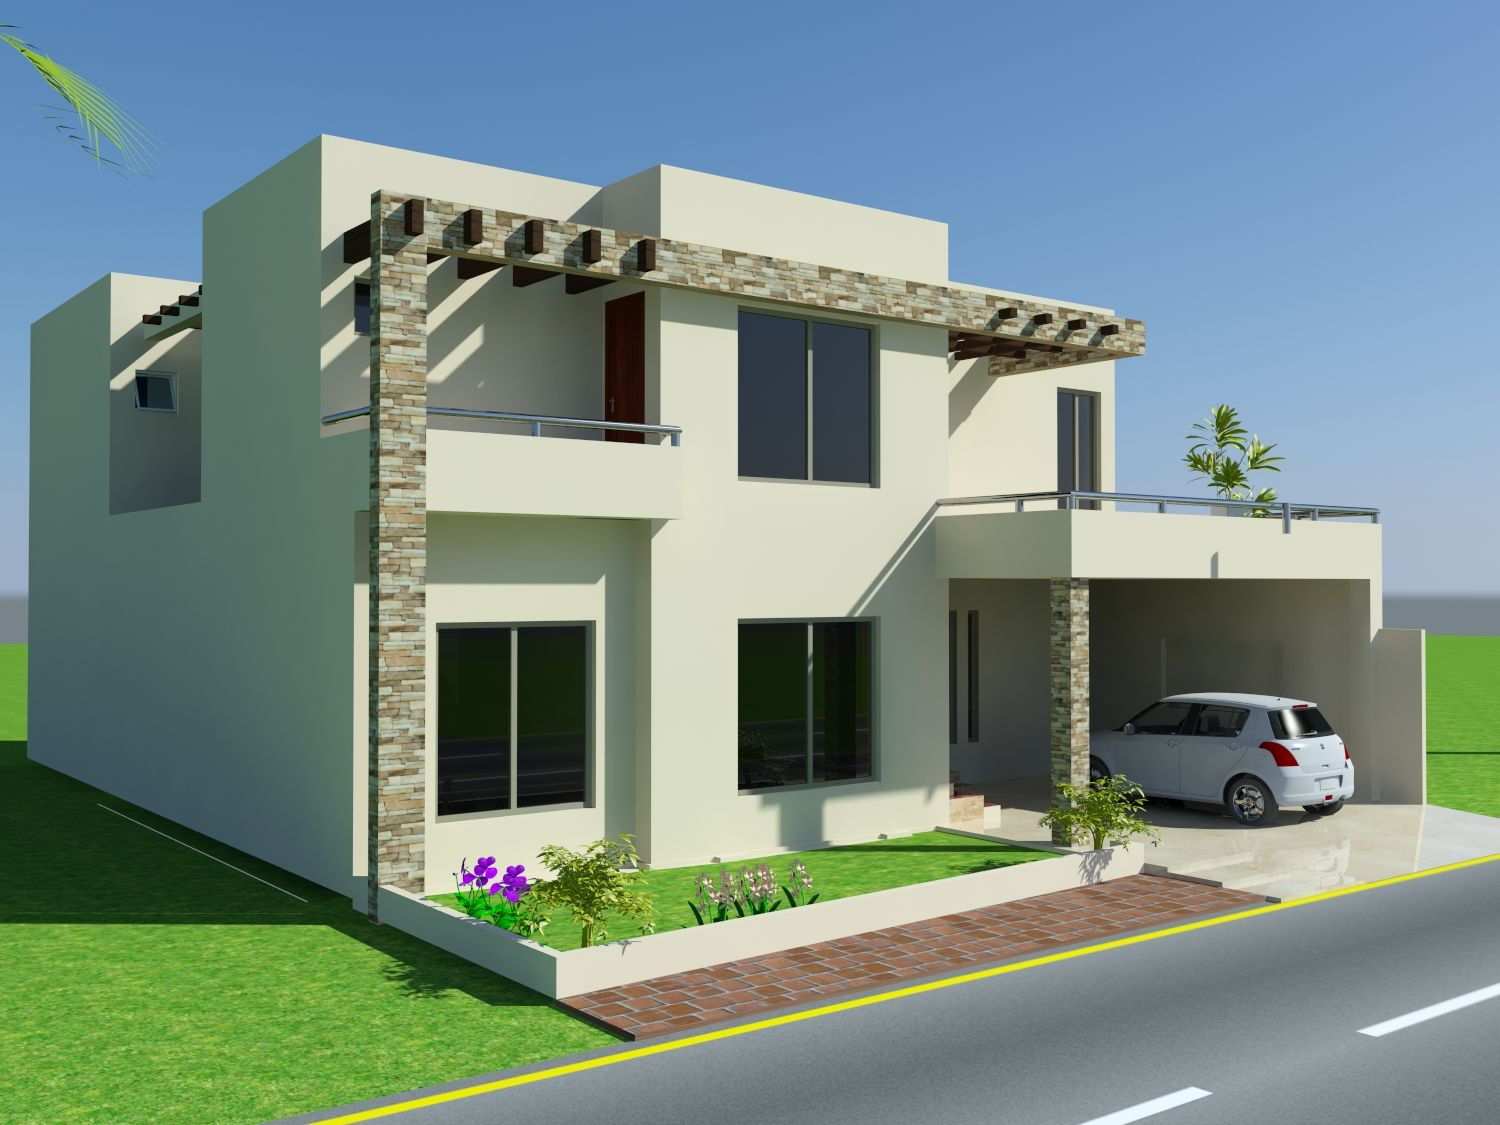 3d front elevation com 10 marla house design mian wali pakistan house design pinterest Front of home design ideas